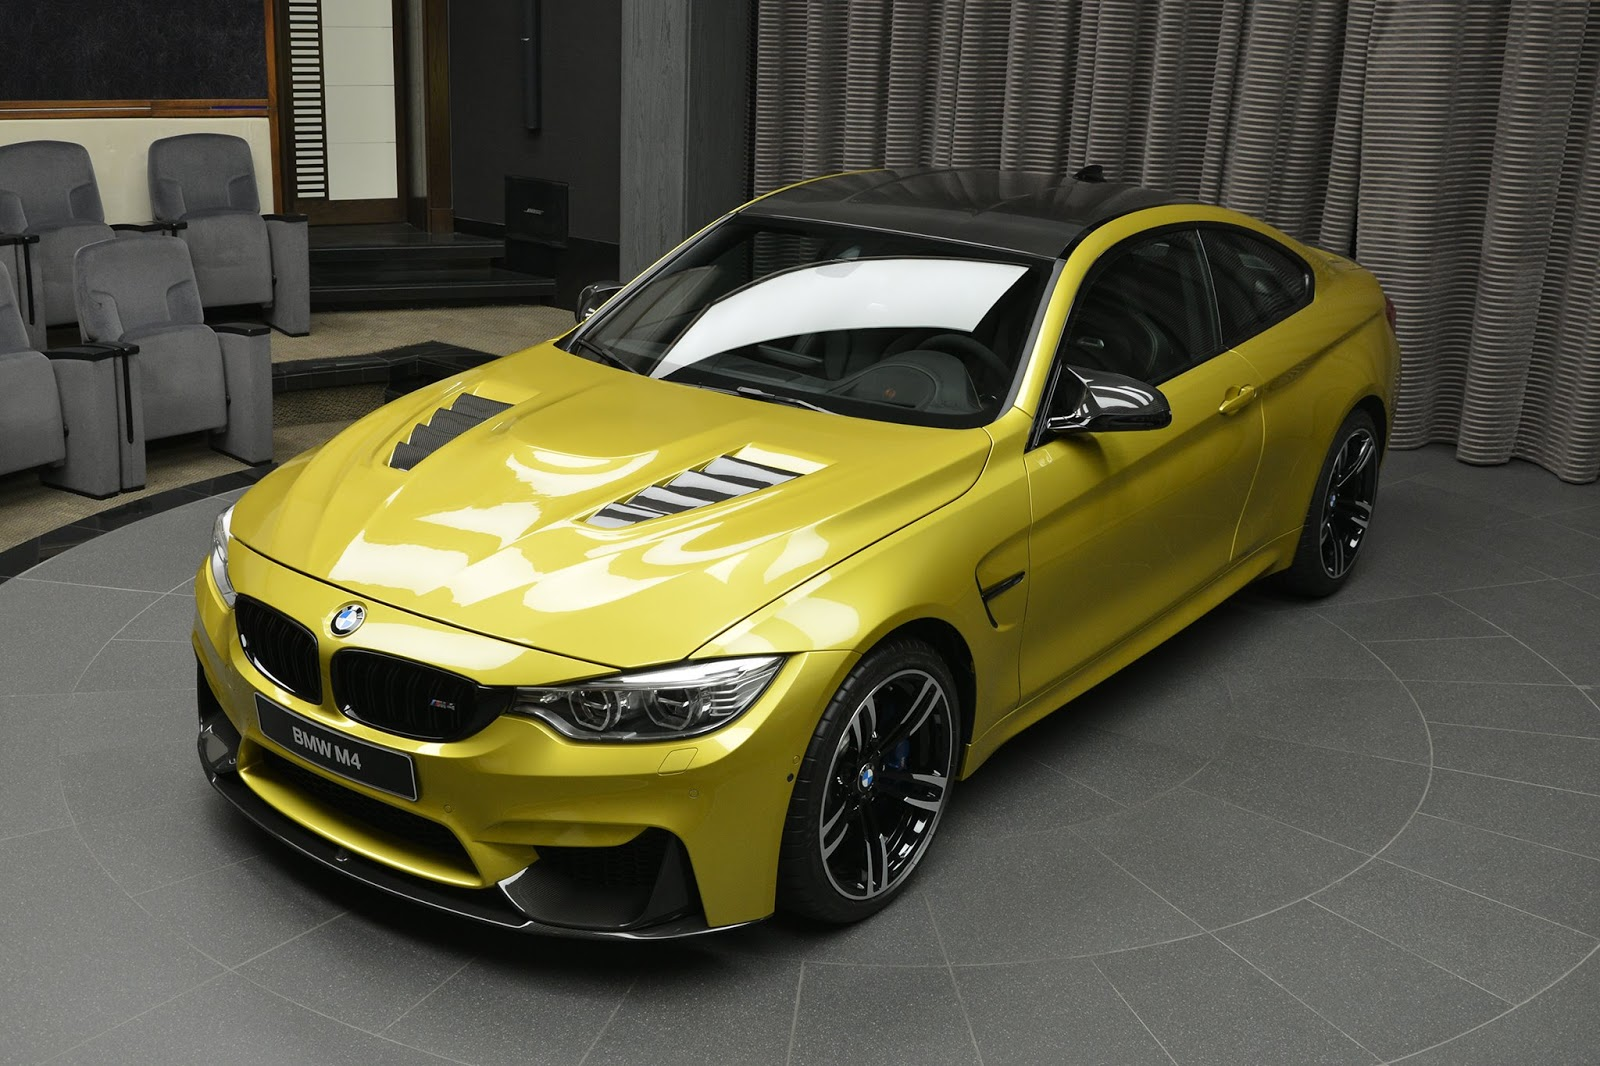 BMW_M4_Austin_Yellow_04